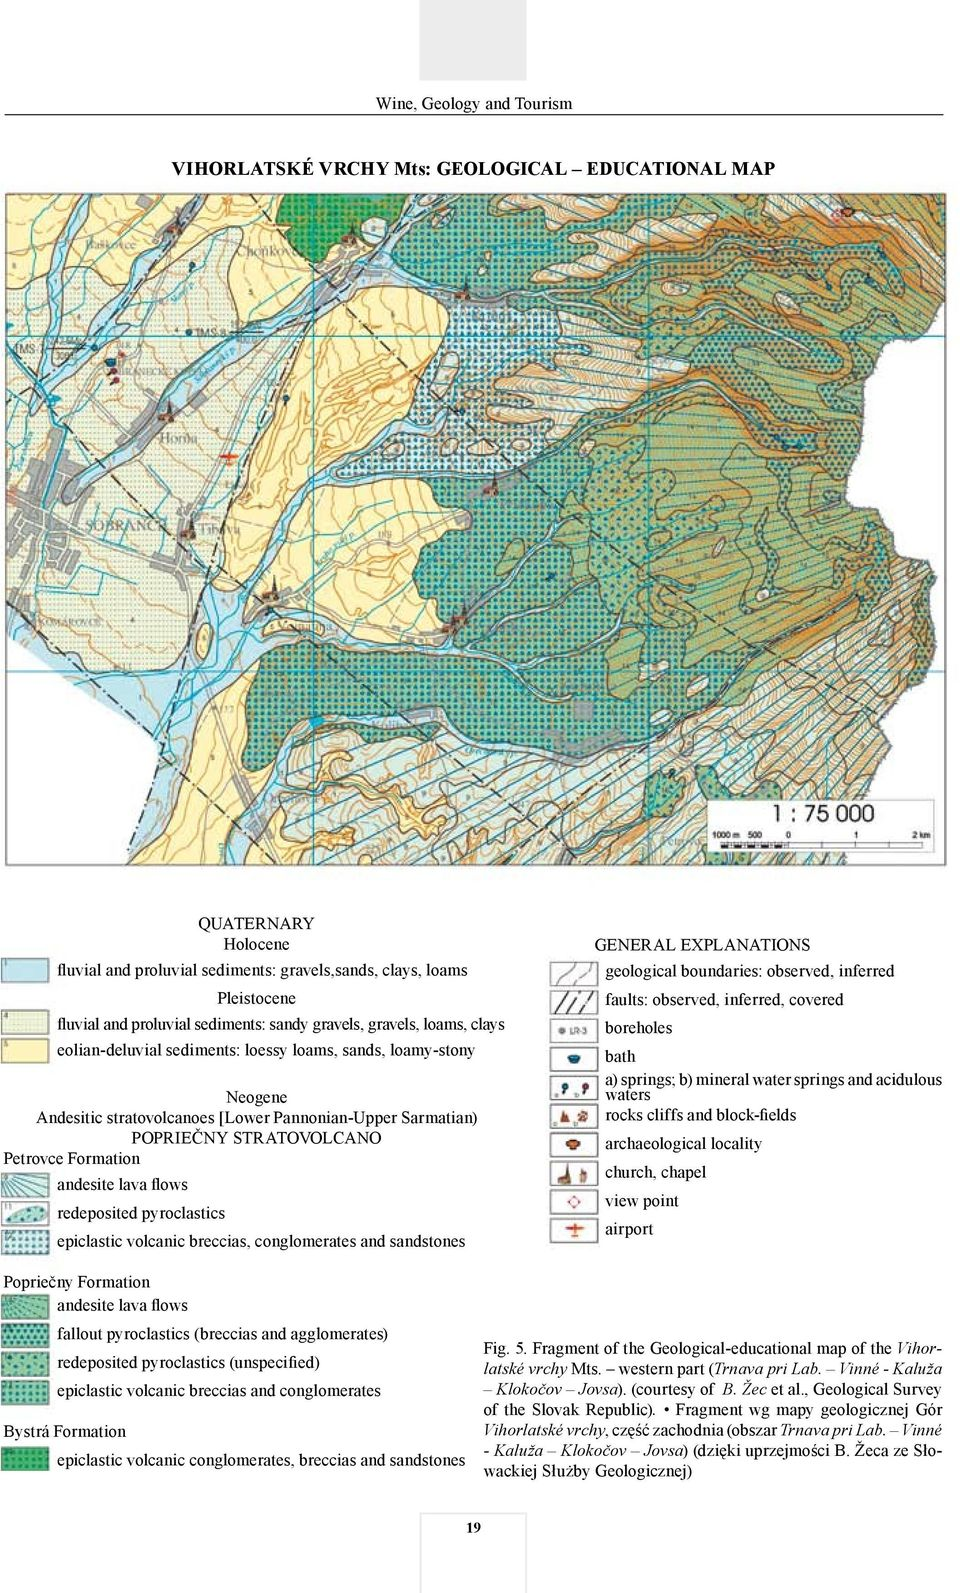 Petrovce Formation andesite lava flows redeposited pyroclastics epiclastic volcanic breccias, conglomerates and sandstones GENERAL EXPLANATIONS geological boundaries: observed, inferred faults: